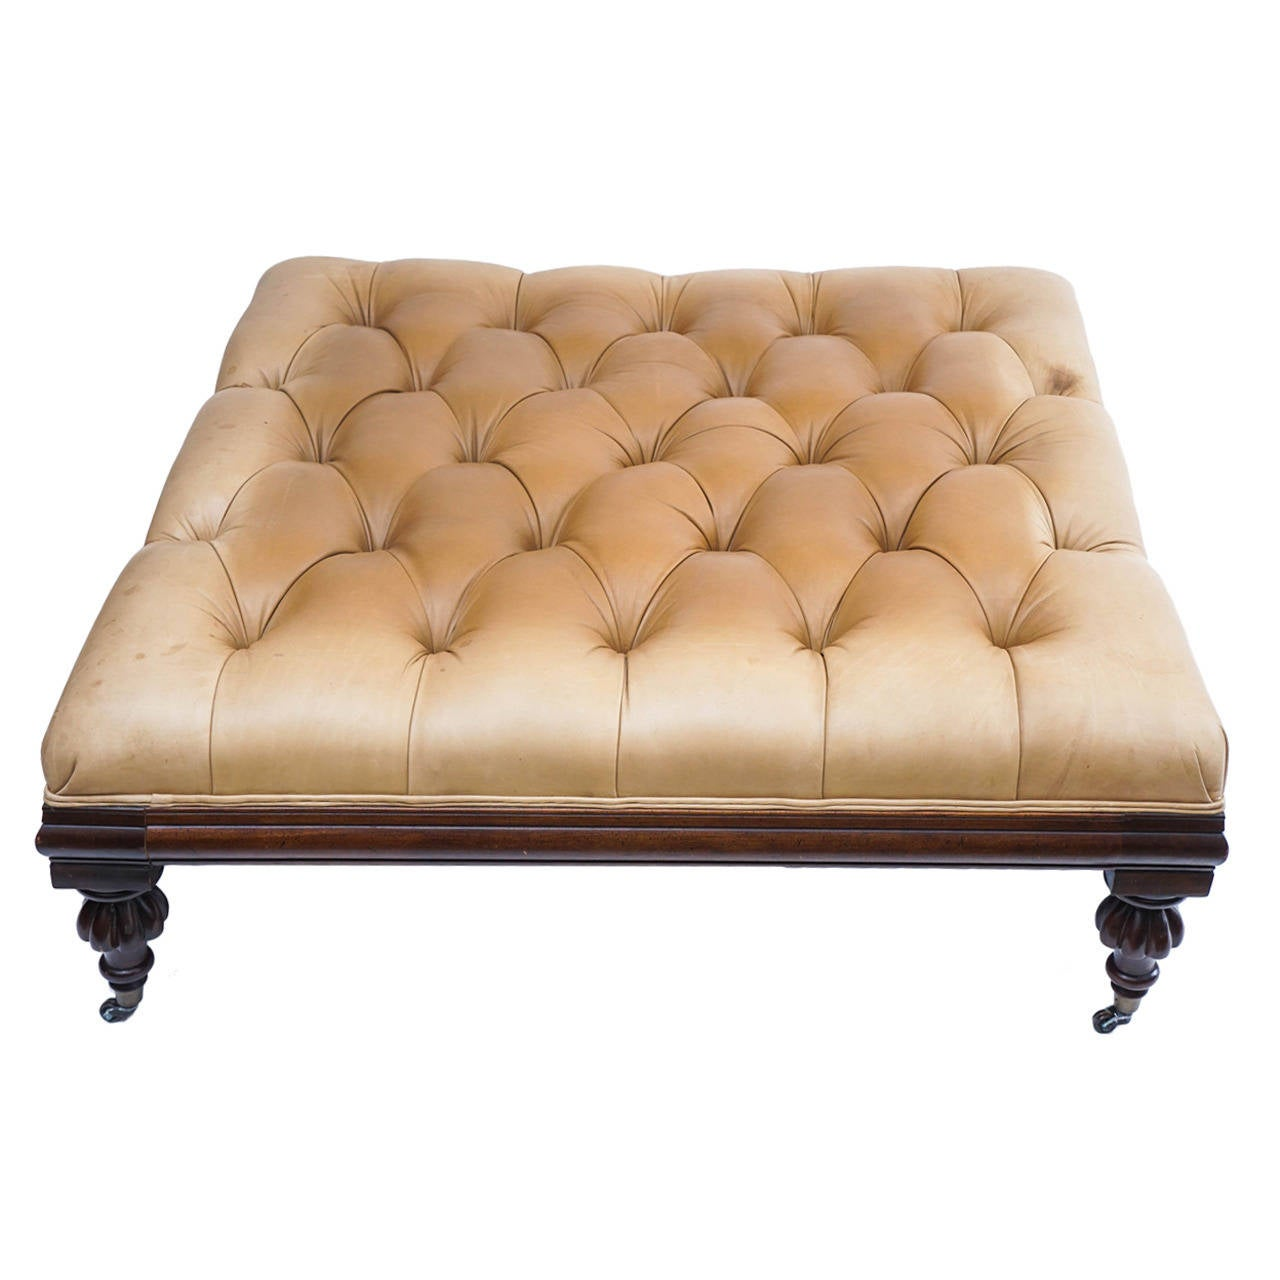 Large Henredon Leather Ottoman Or Coffee Table With Traditional Casters At 1stdibs